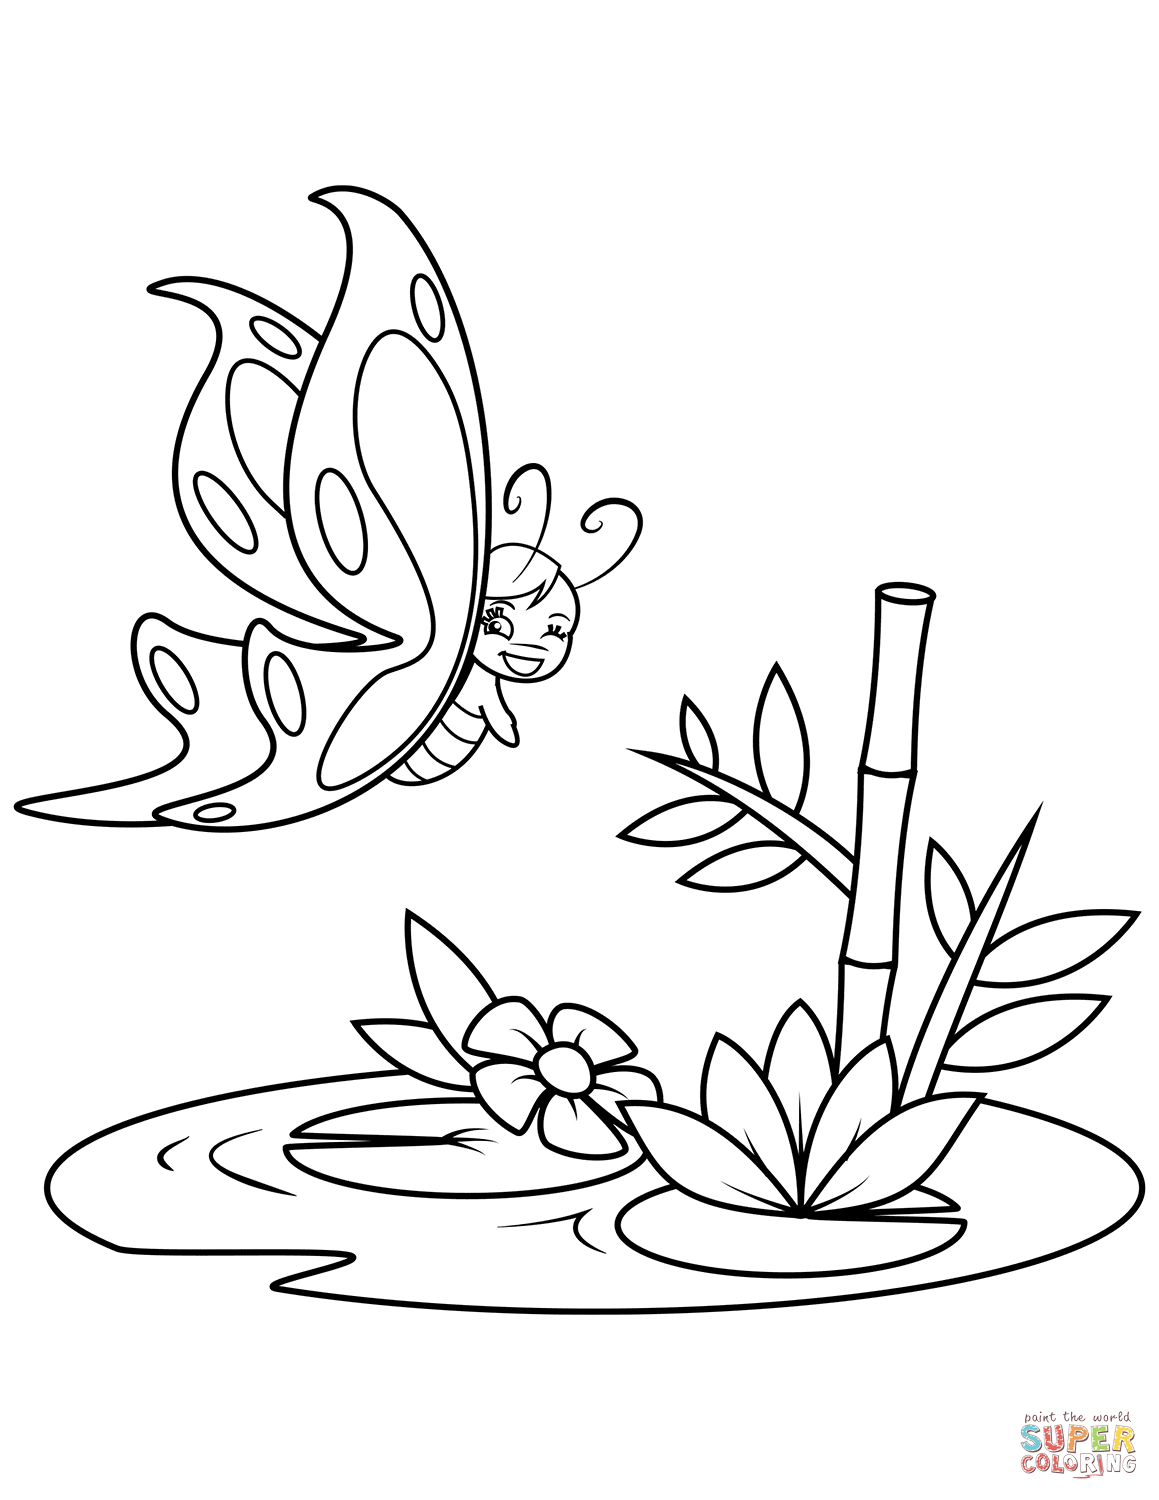 swamp coloring page swamp coloring coloring pages swamp page coloring